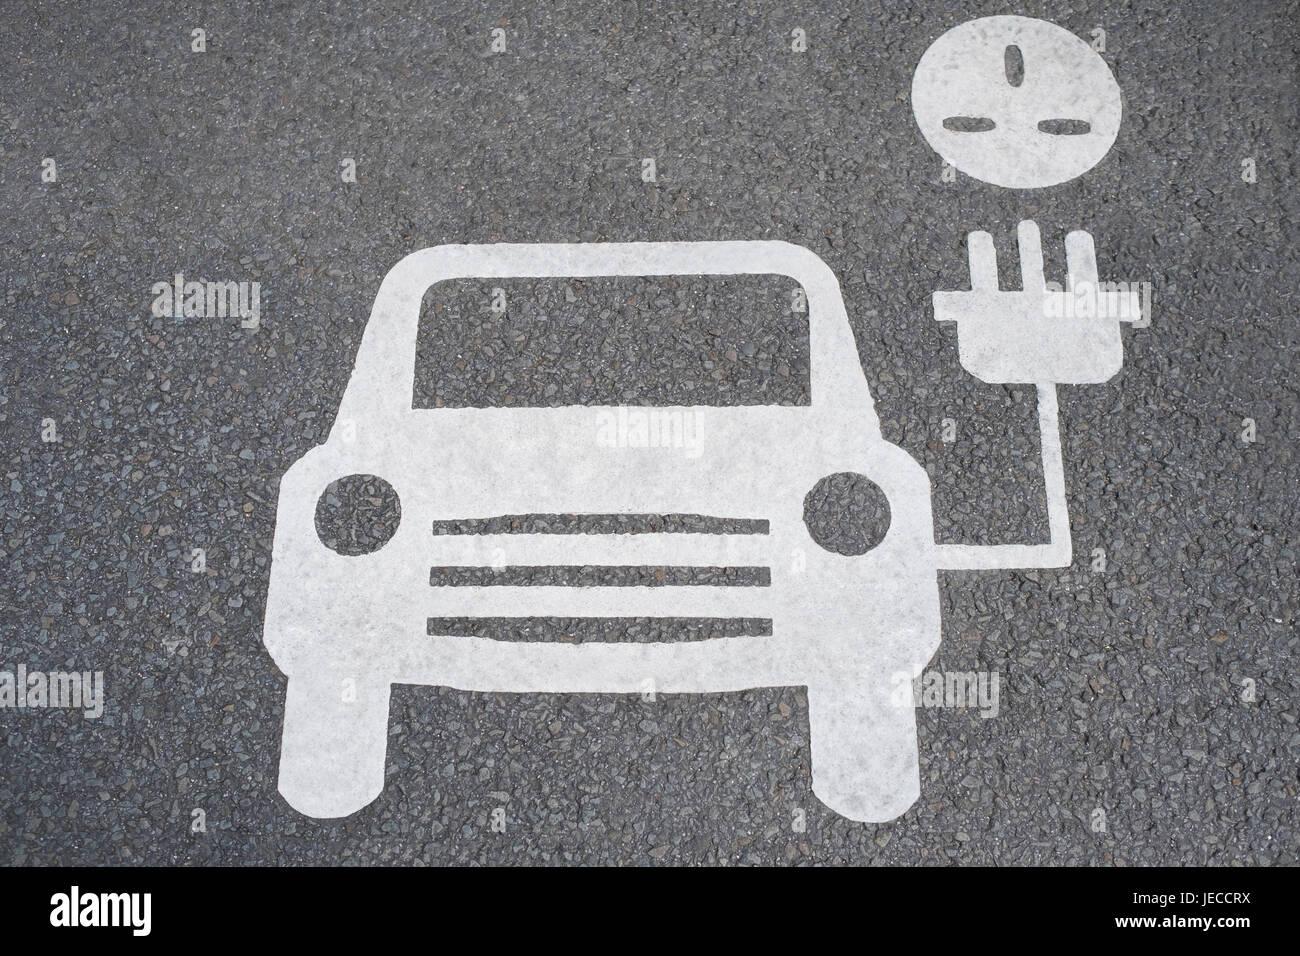 Road Sign Showing Charging Point For Electric Cars - Stock Image